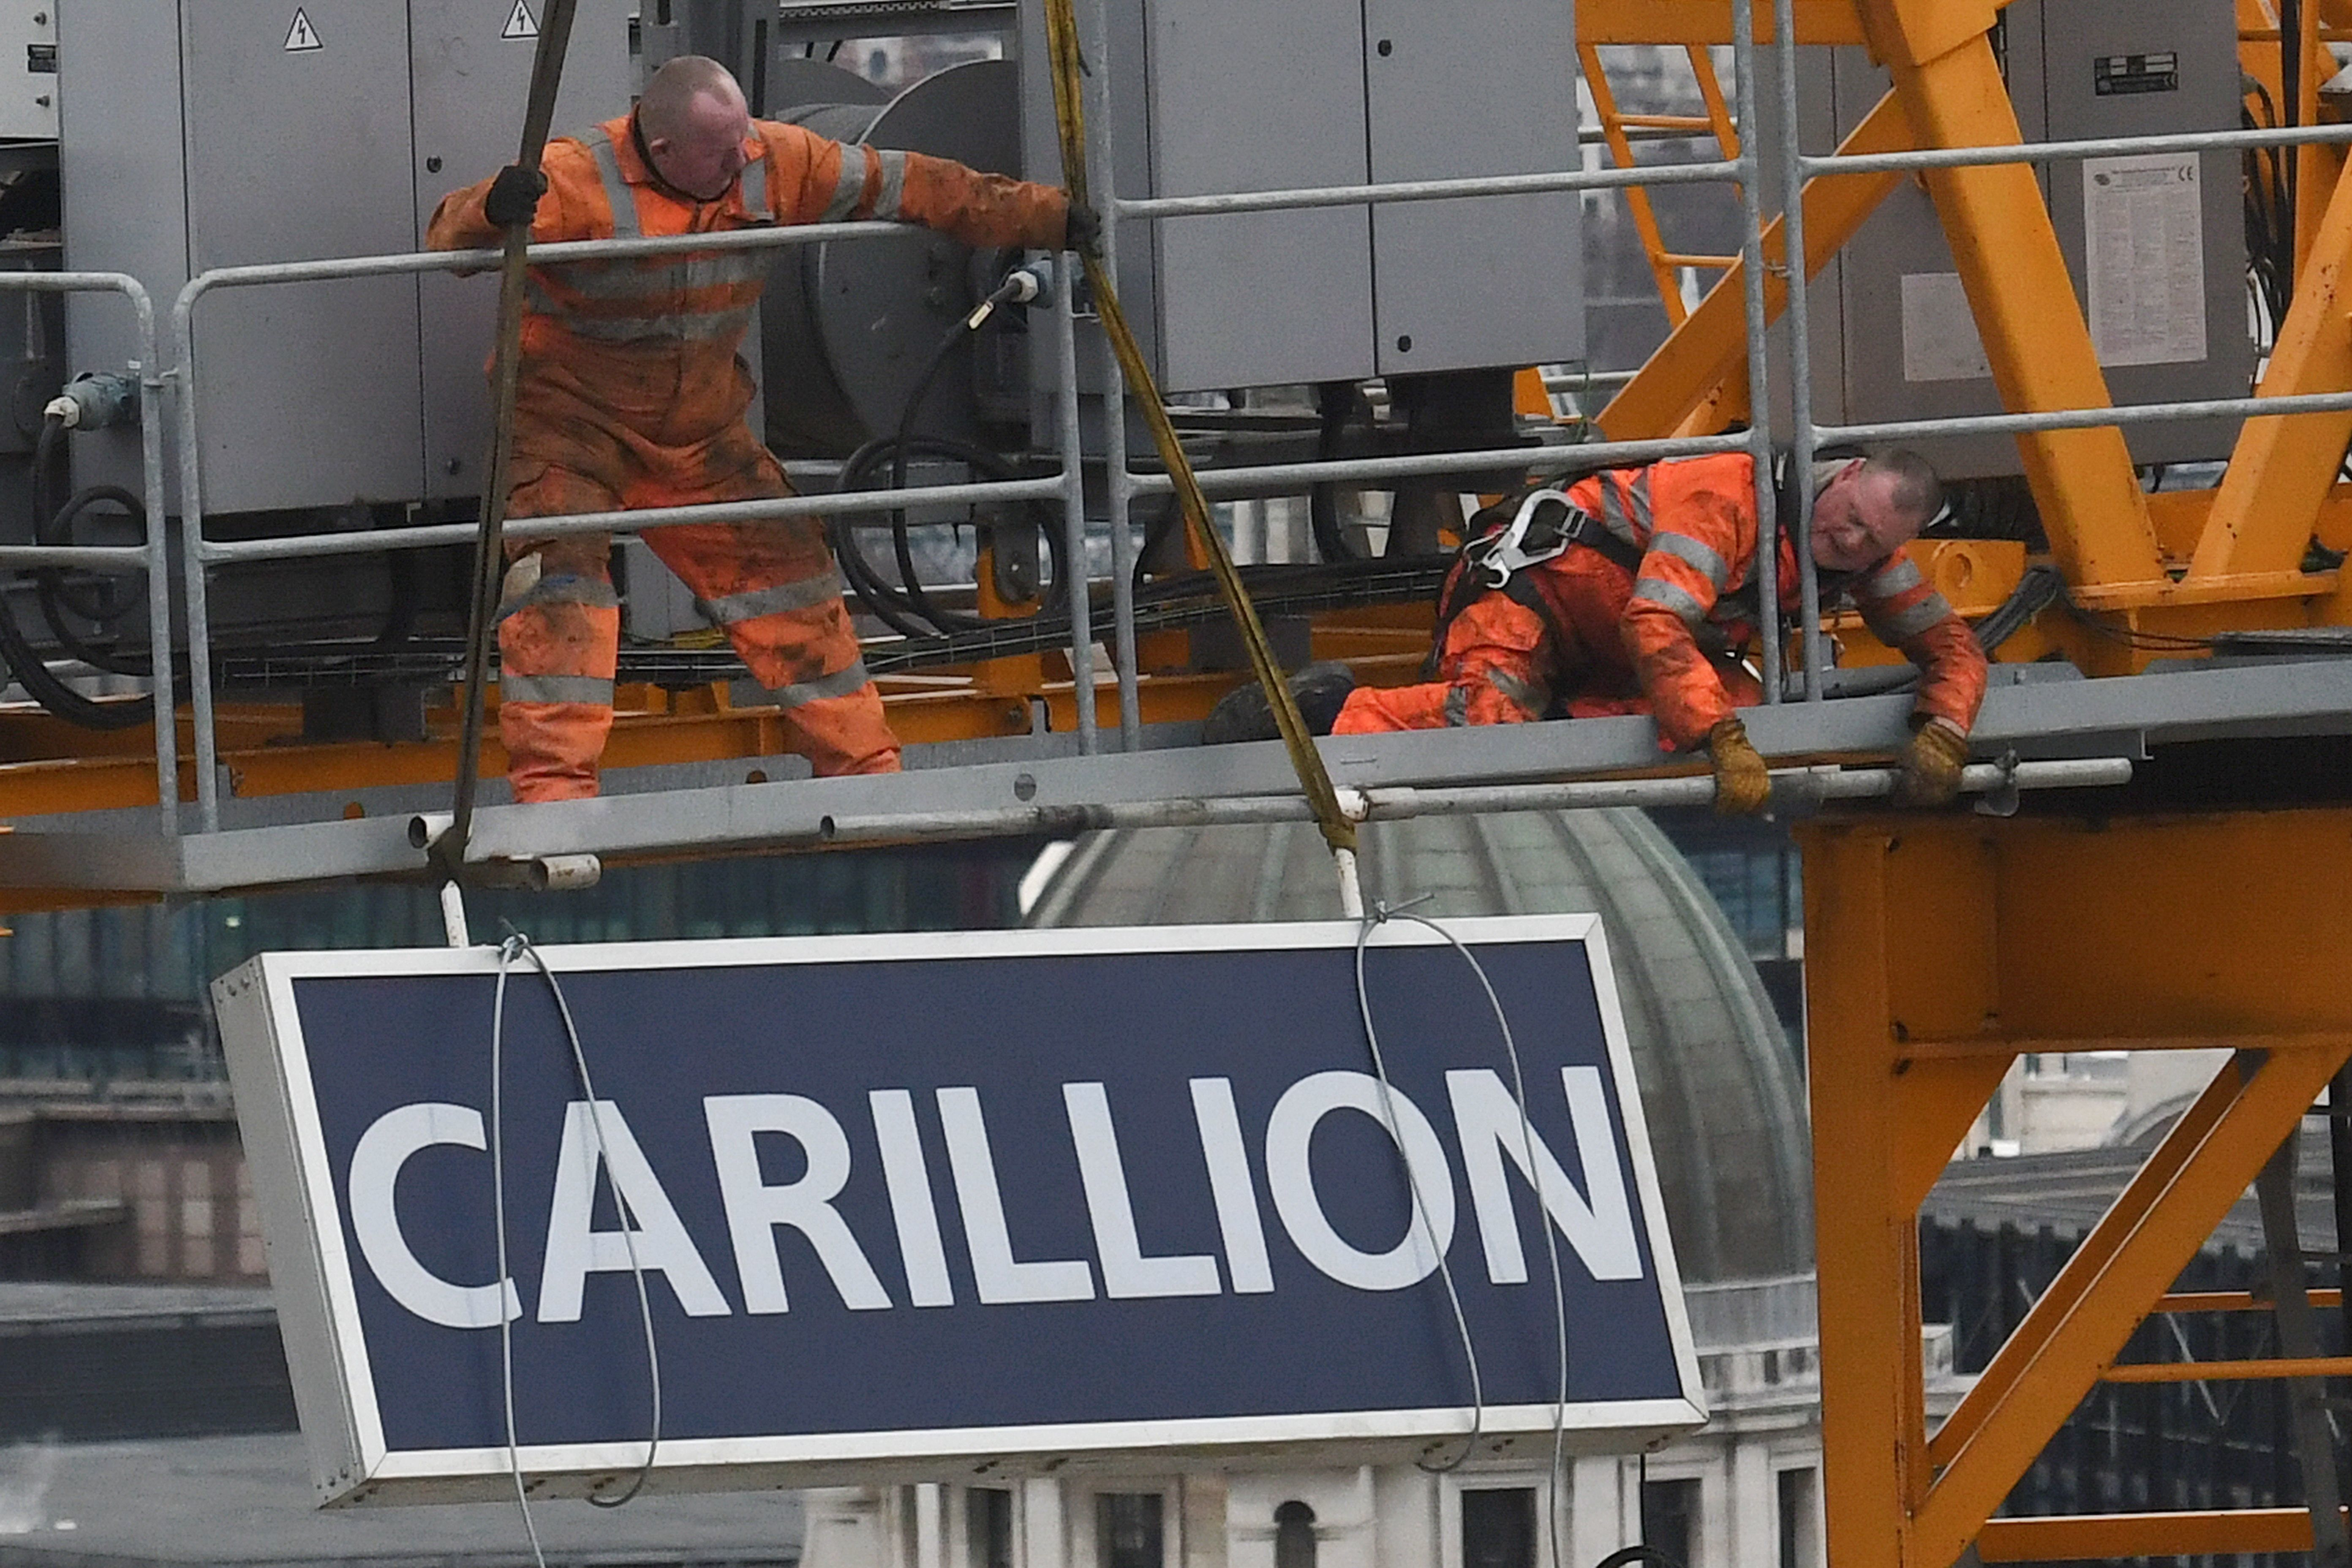 Carillion's liquidation has put at risk the future of many other businesses, a report has